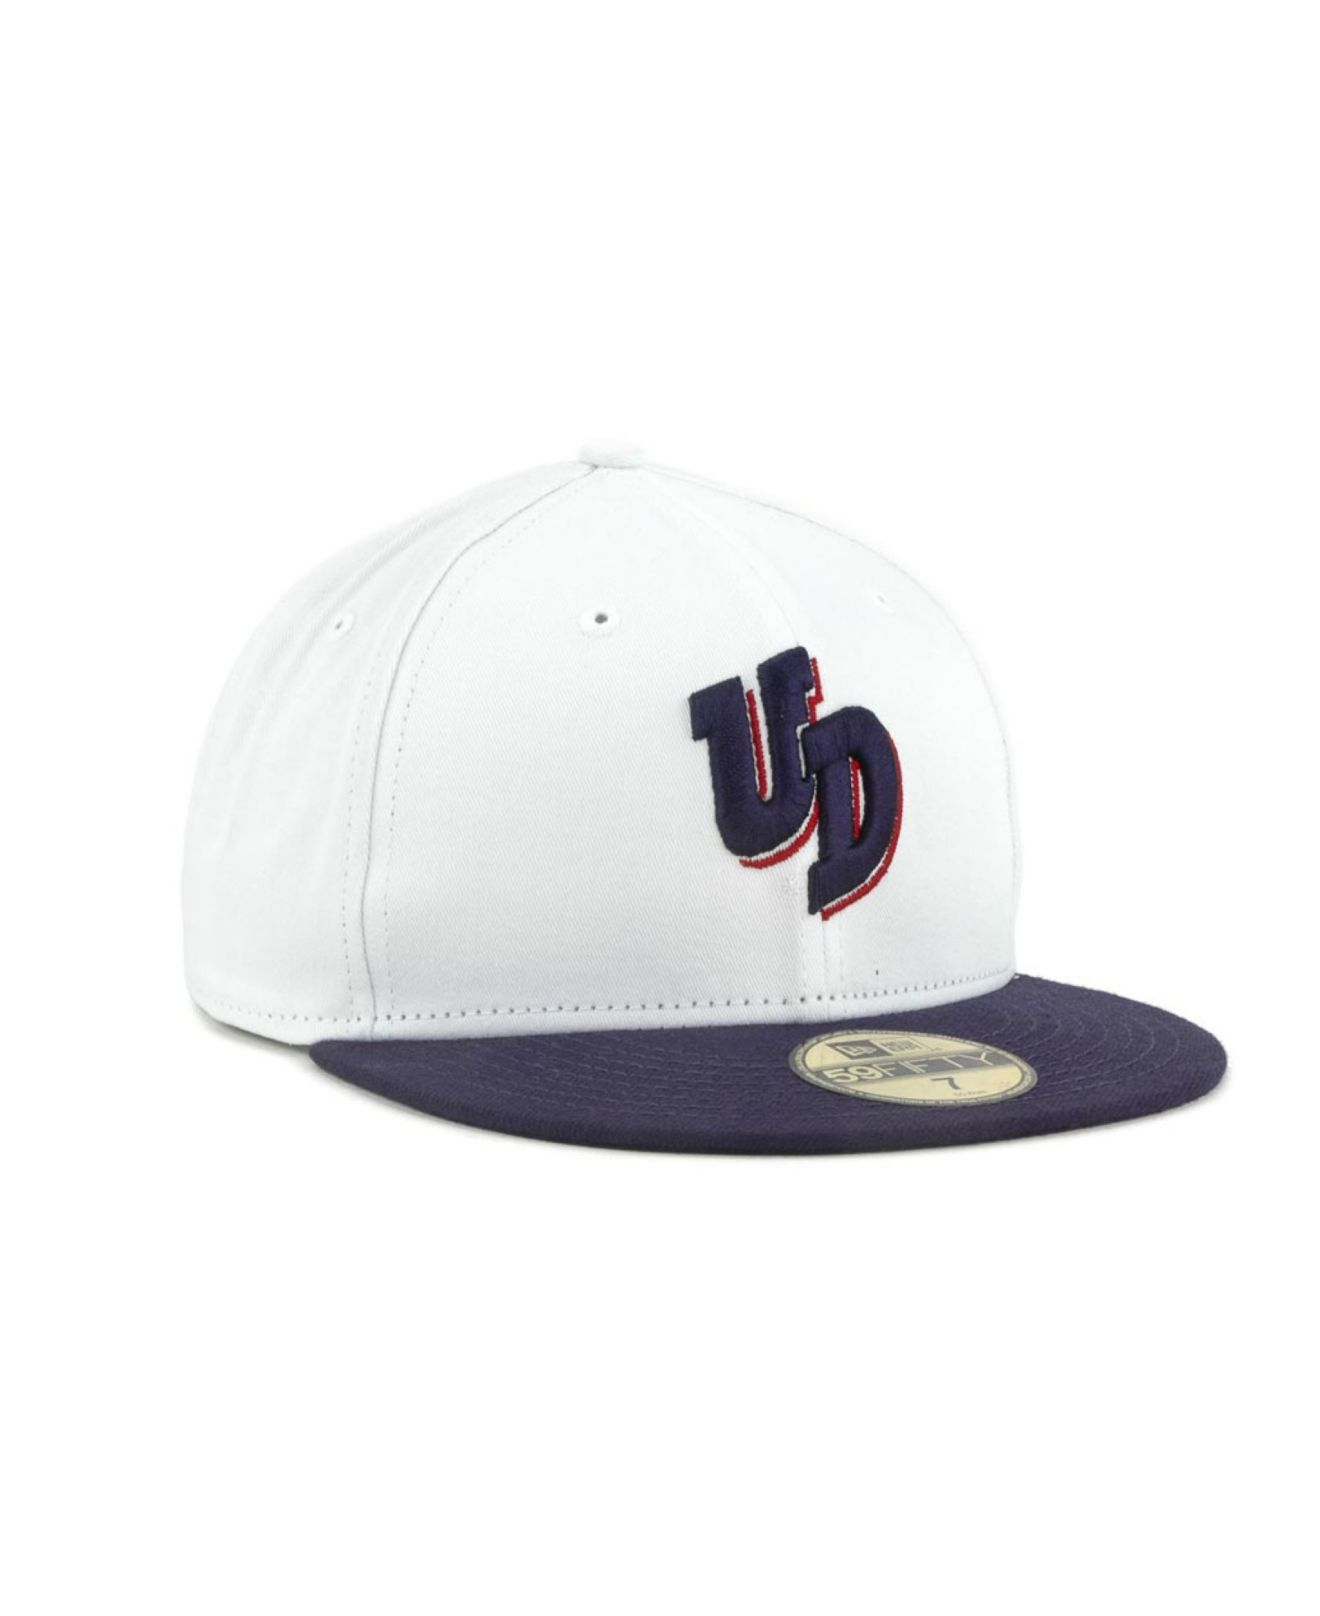 04f73fcb2a476 Lyst - KTZ Dayton Flyers Ncaa White 2 Tone 59fifty Cap in Blue for Men